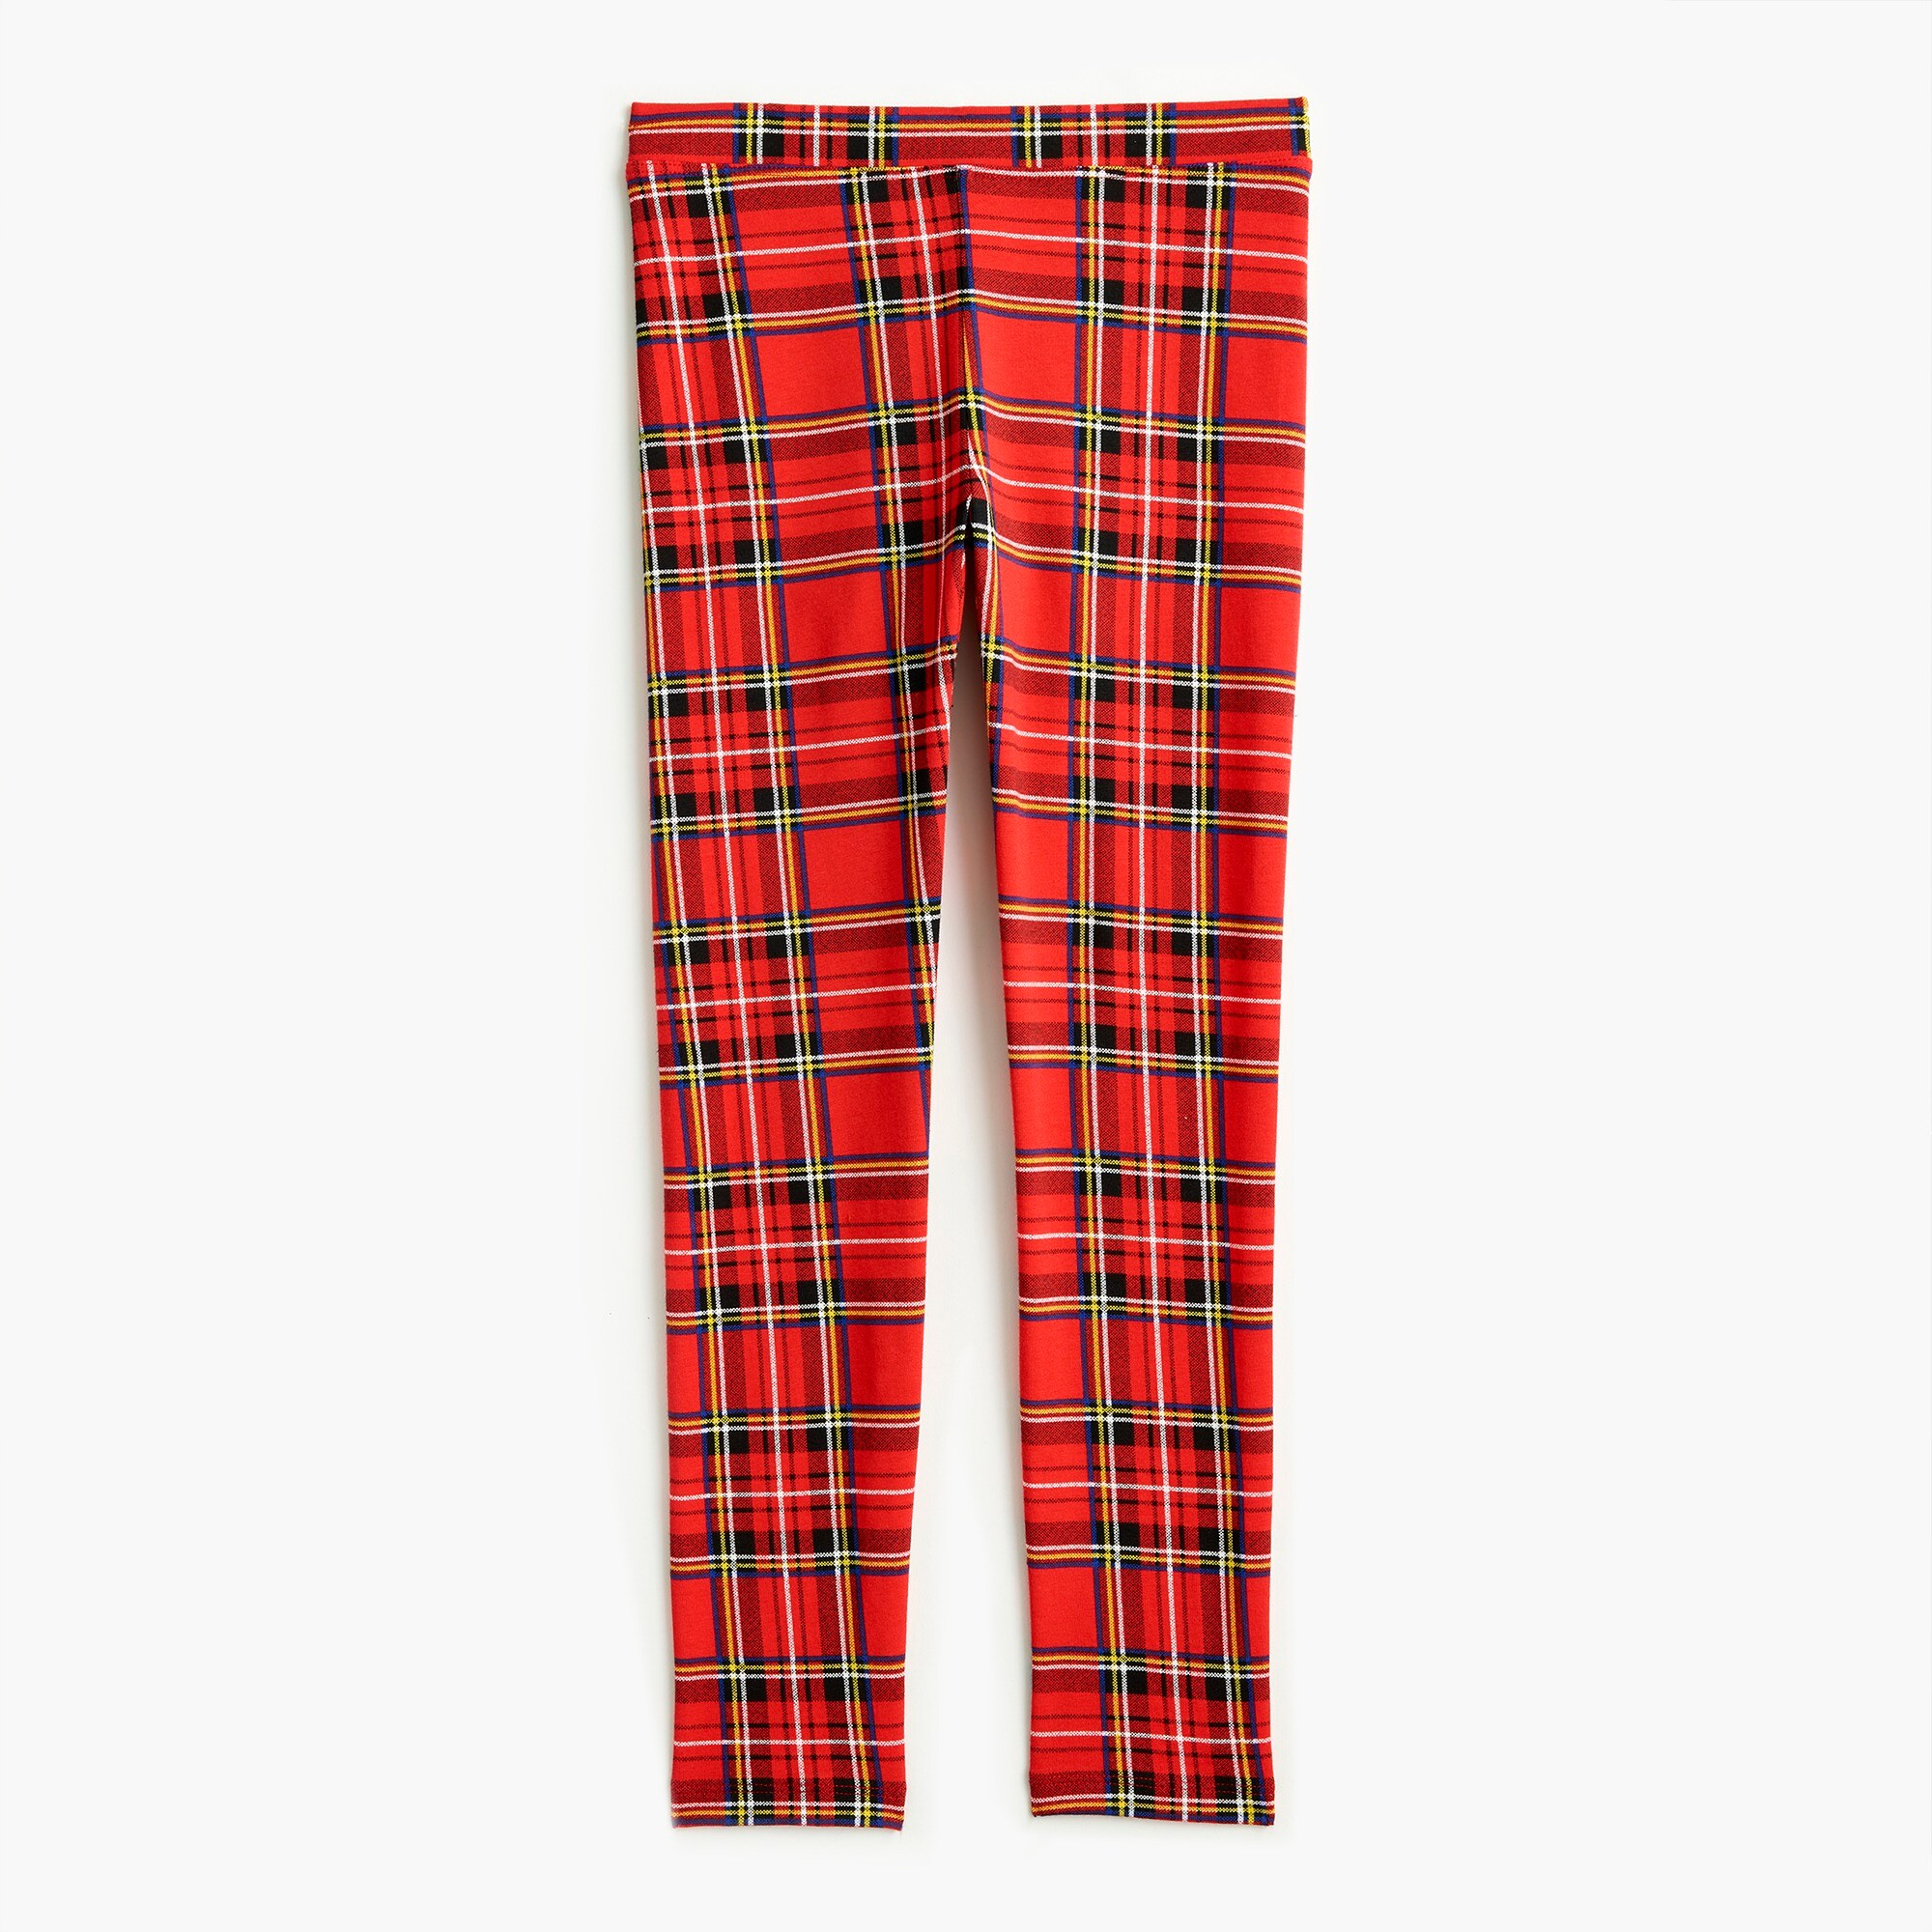 girls Girls' everyday leggings in Brodie red tartan